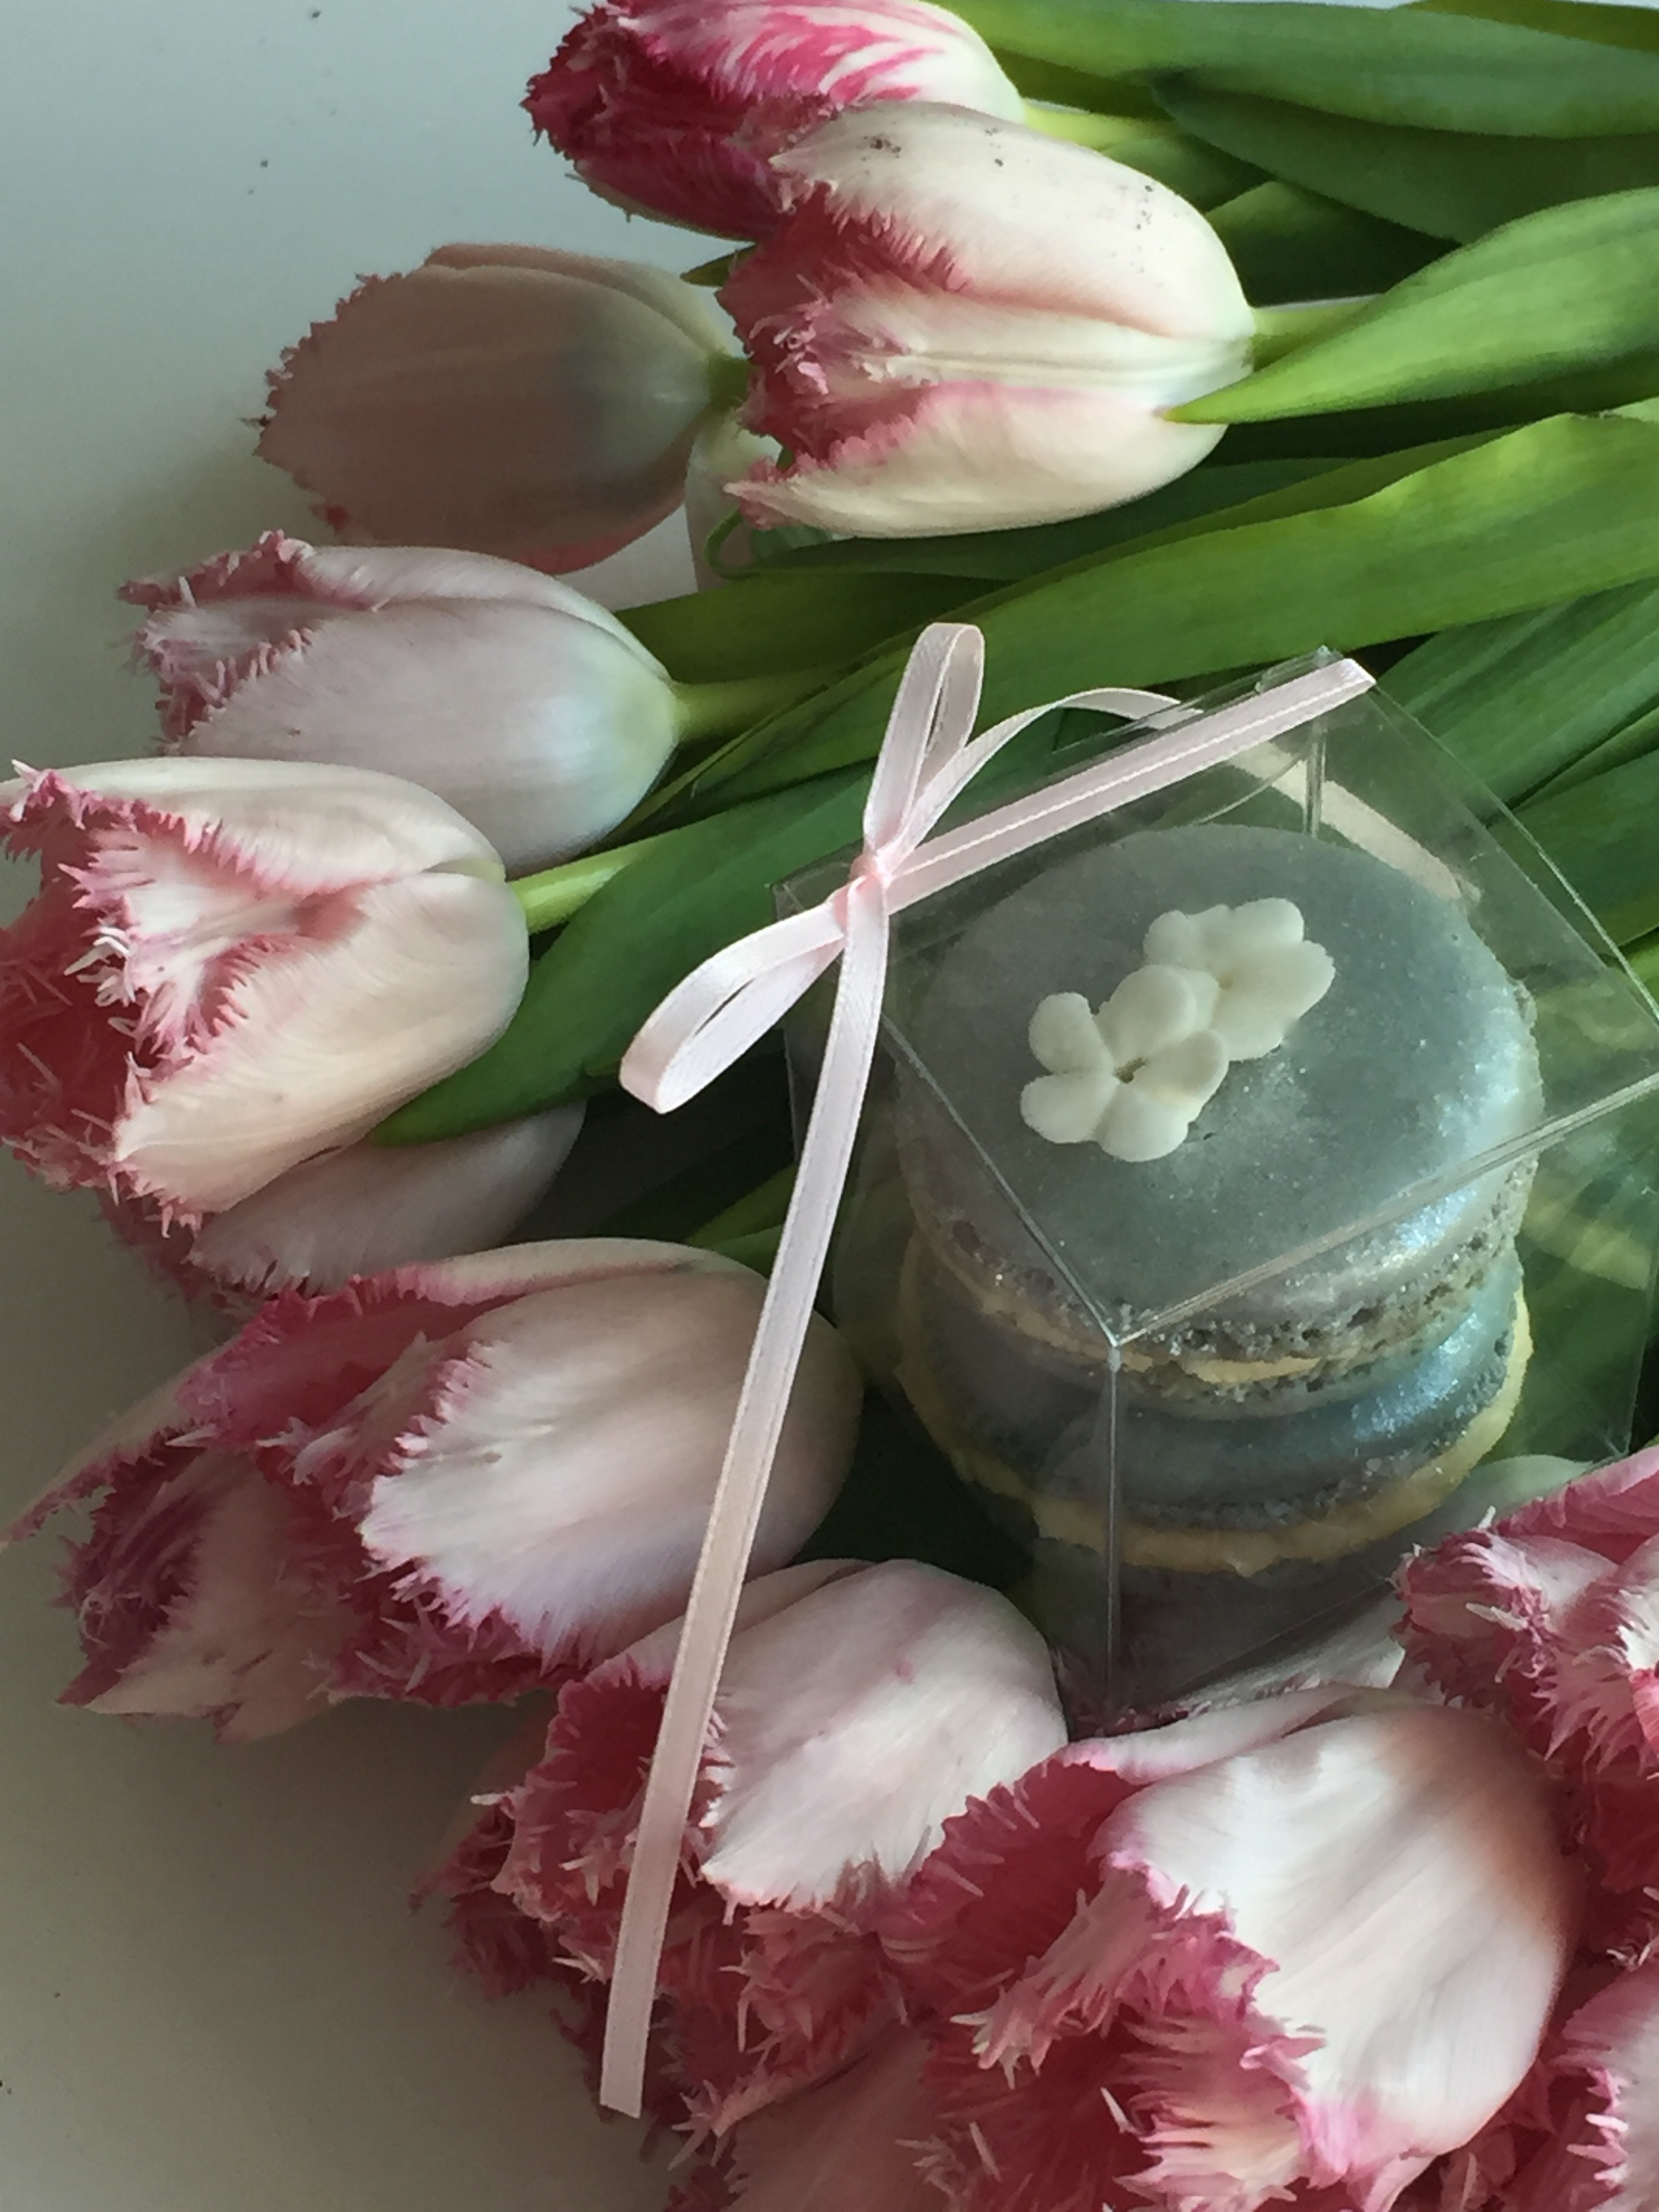 Macaron Favors. Quintessential summer elegance. As shown $6.50.